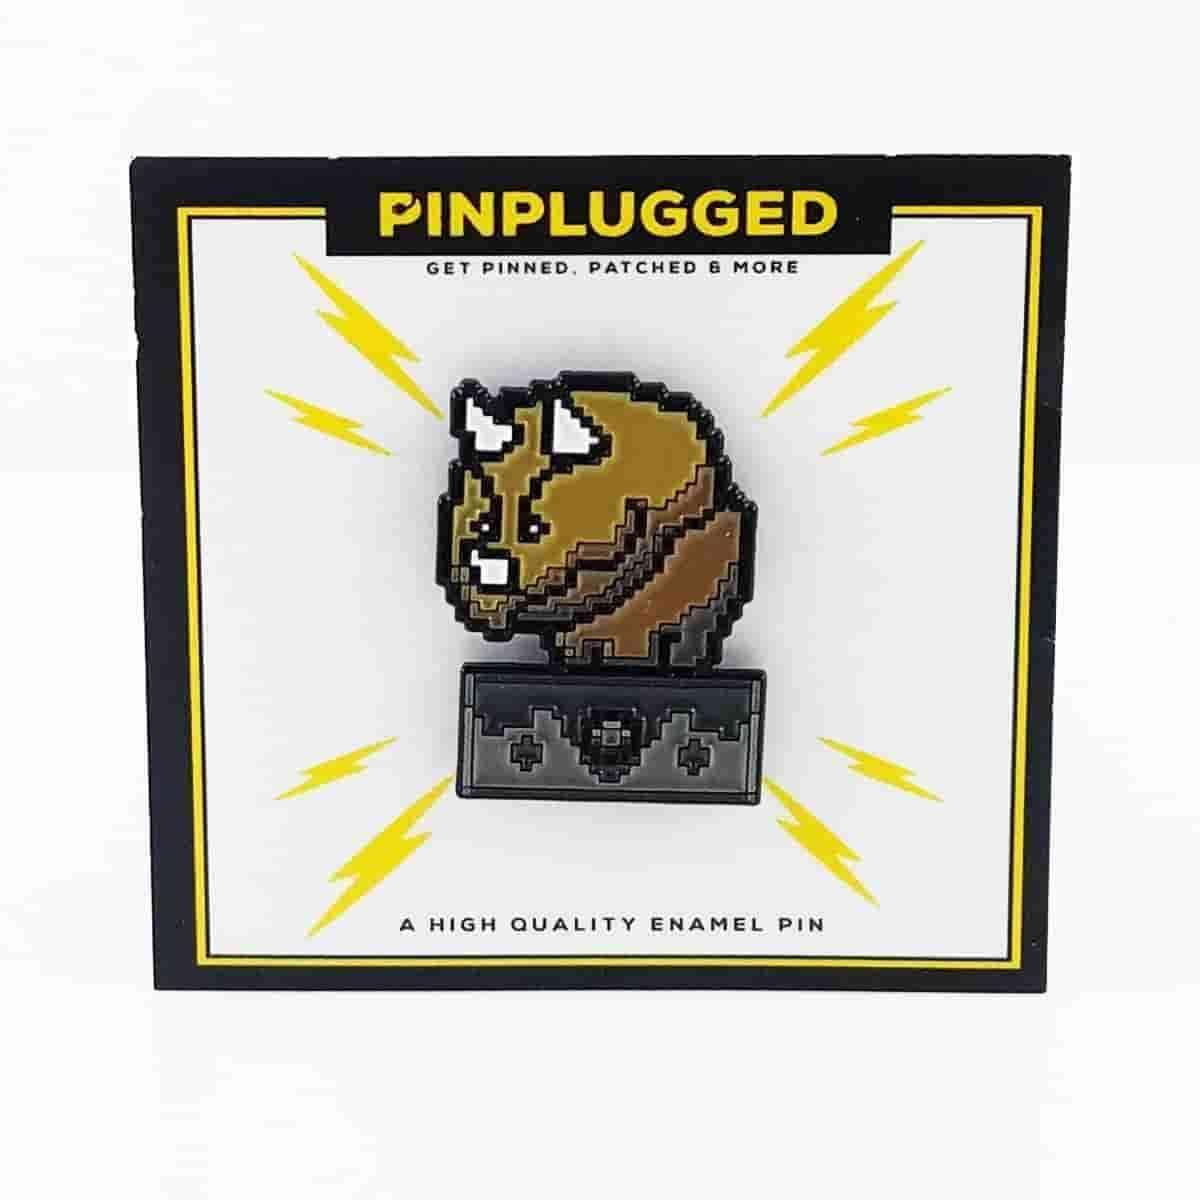 Reznor Enamel Pin by Pin Plugged